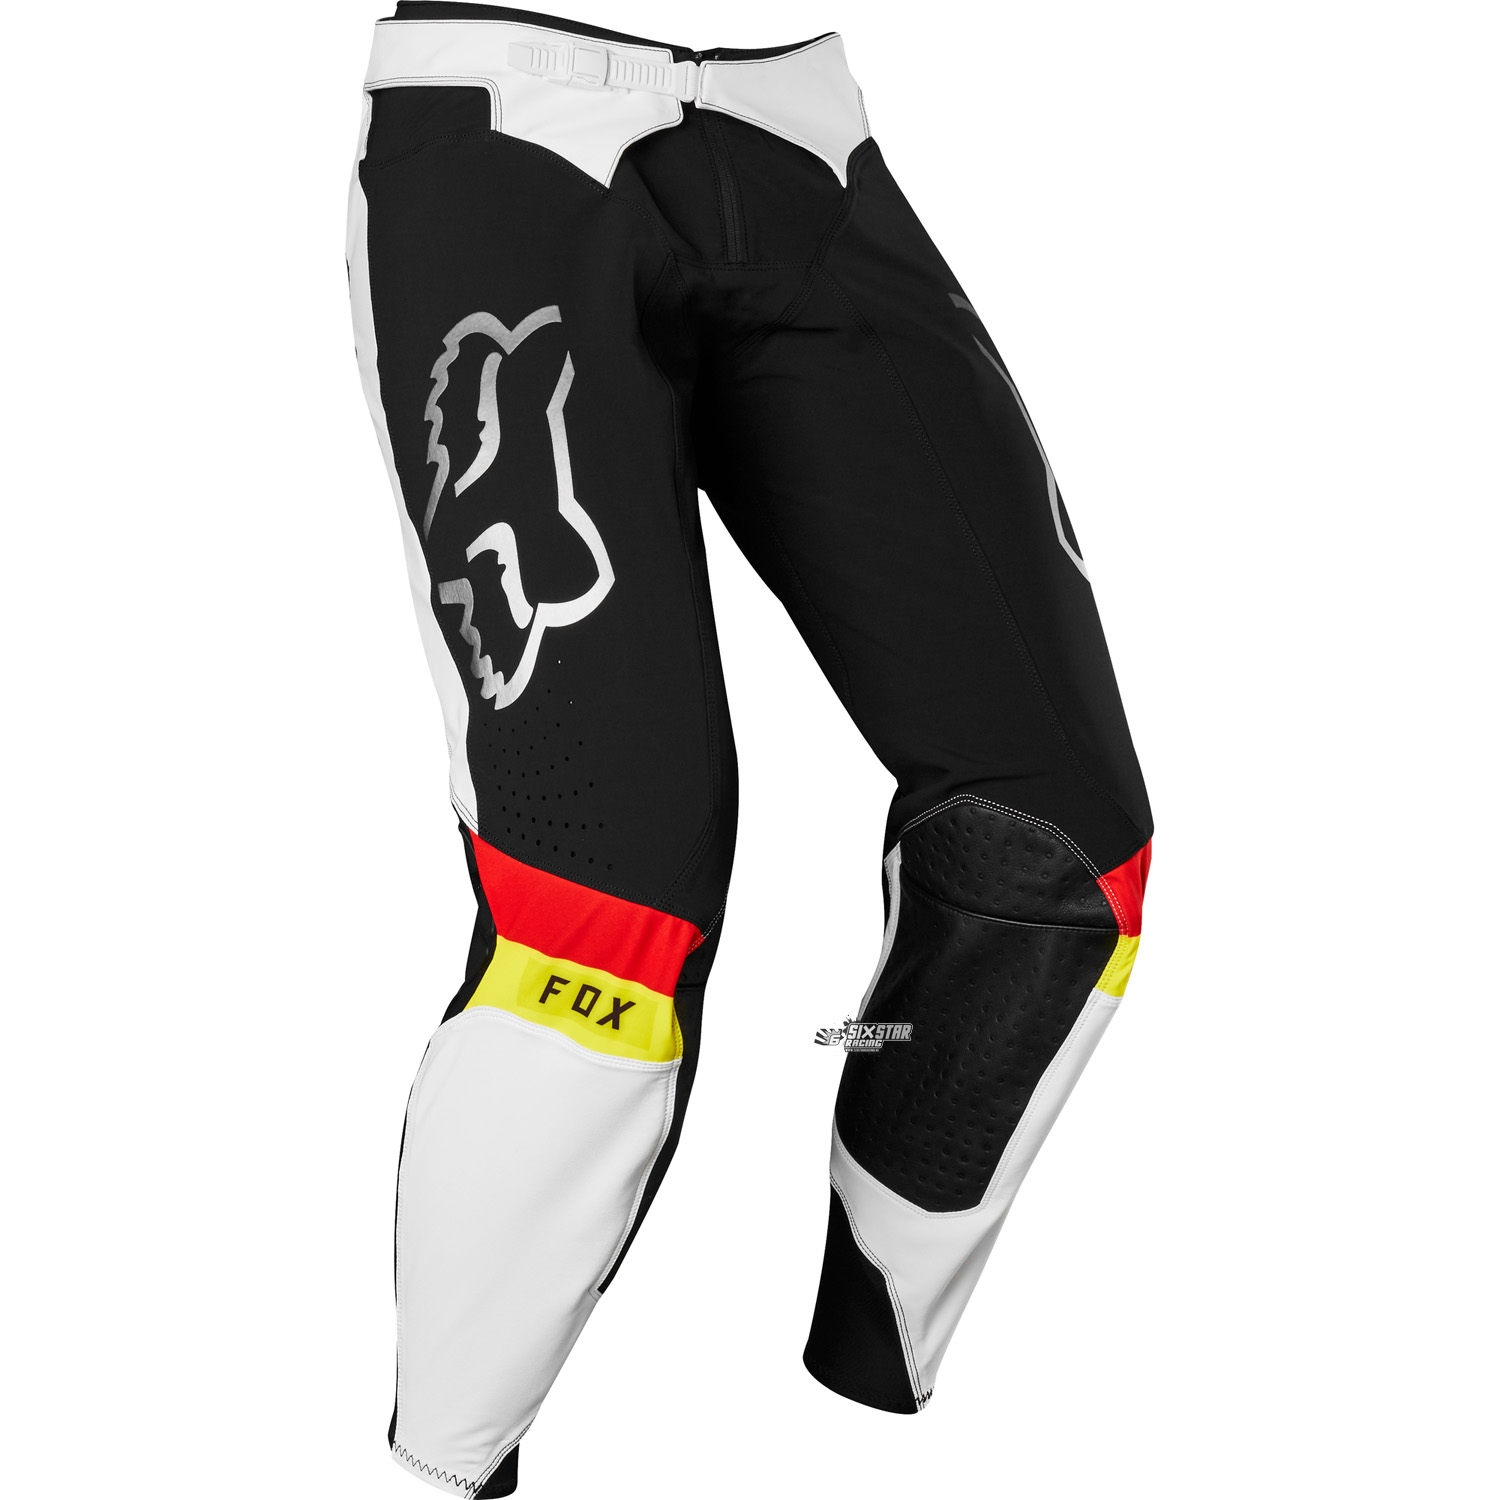 2019 Fox Racing Flexair MXON Limited Edition Black White Gear Kit Combo equipement outfit pak kostuum motocross tenue